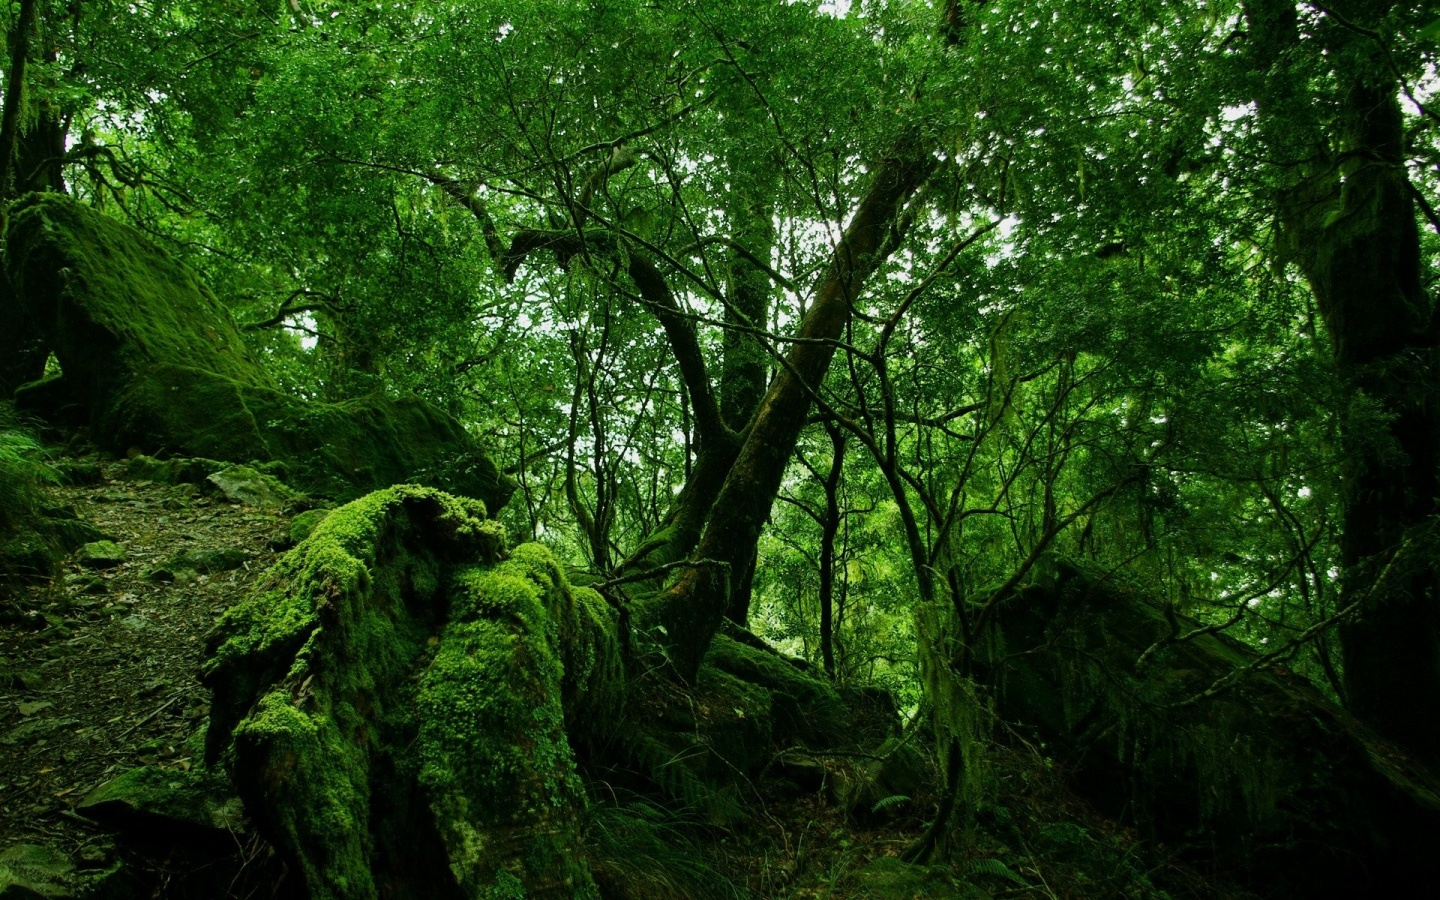 1440x900 Green forest vegetation